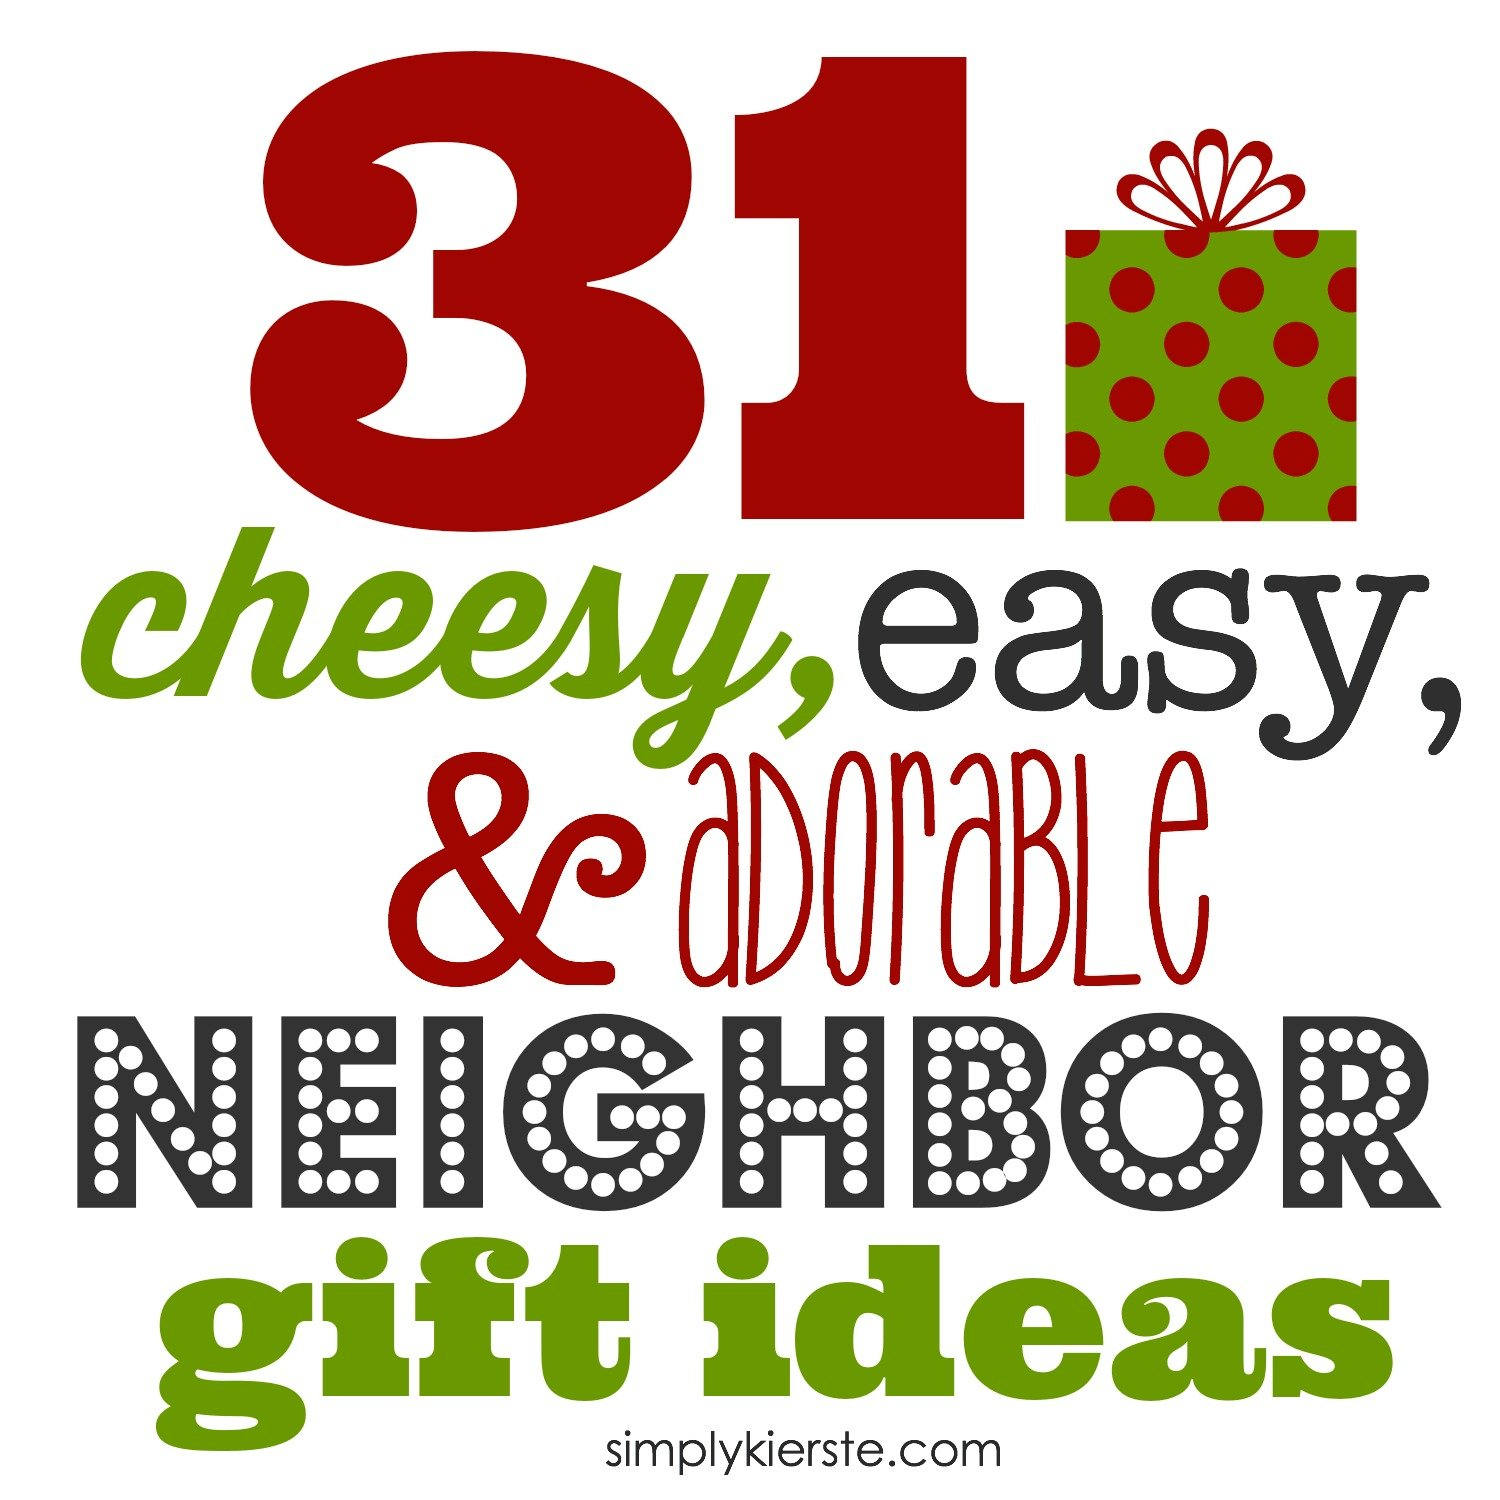 Quotes About Christmas Gifts: 31 Cheesy, Easy & Adorable Neighbor Gift Ideas